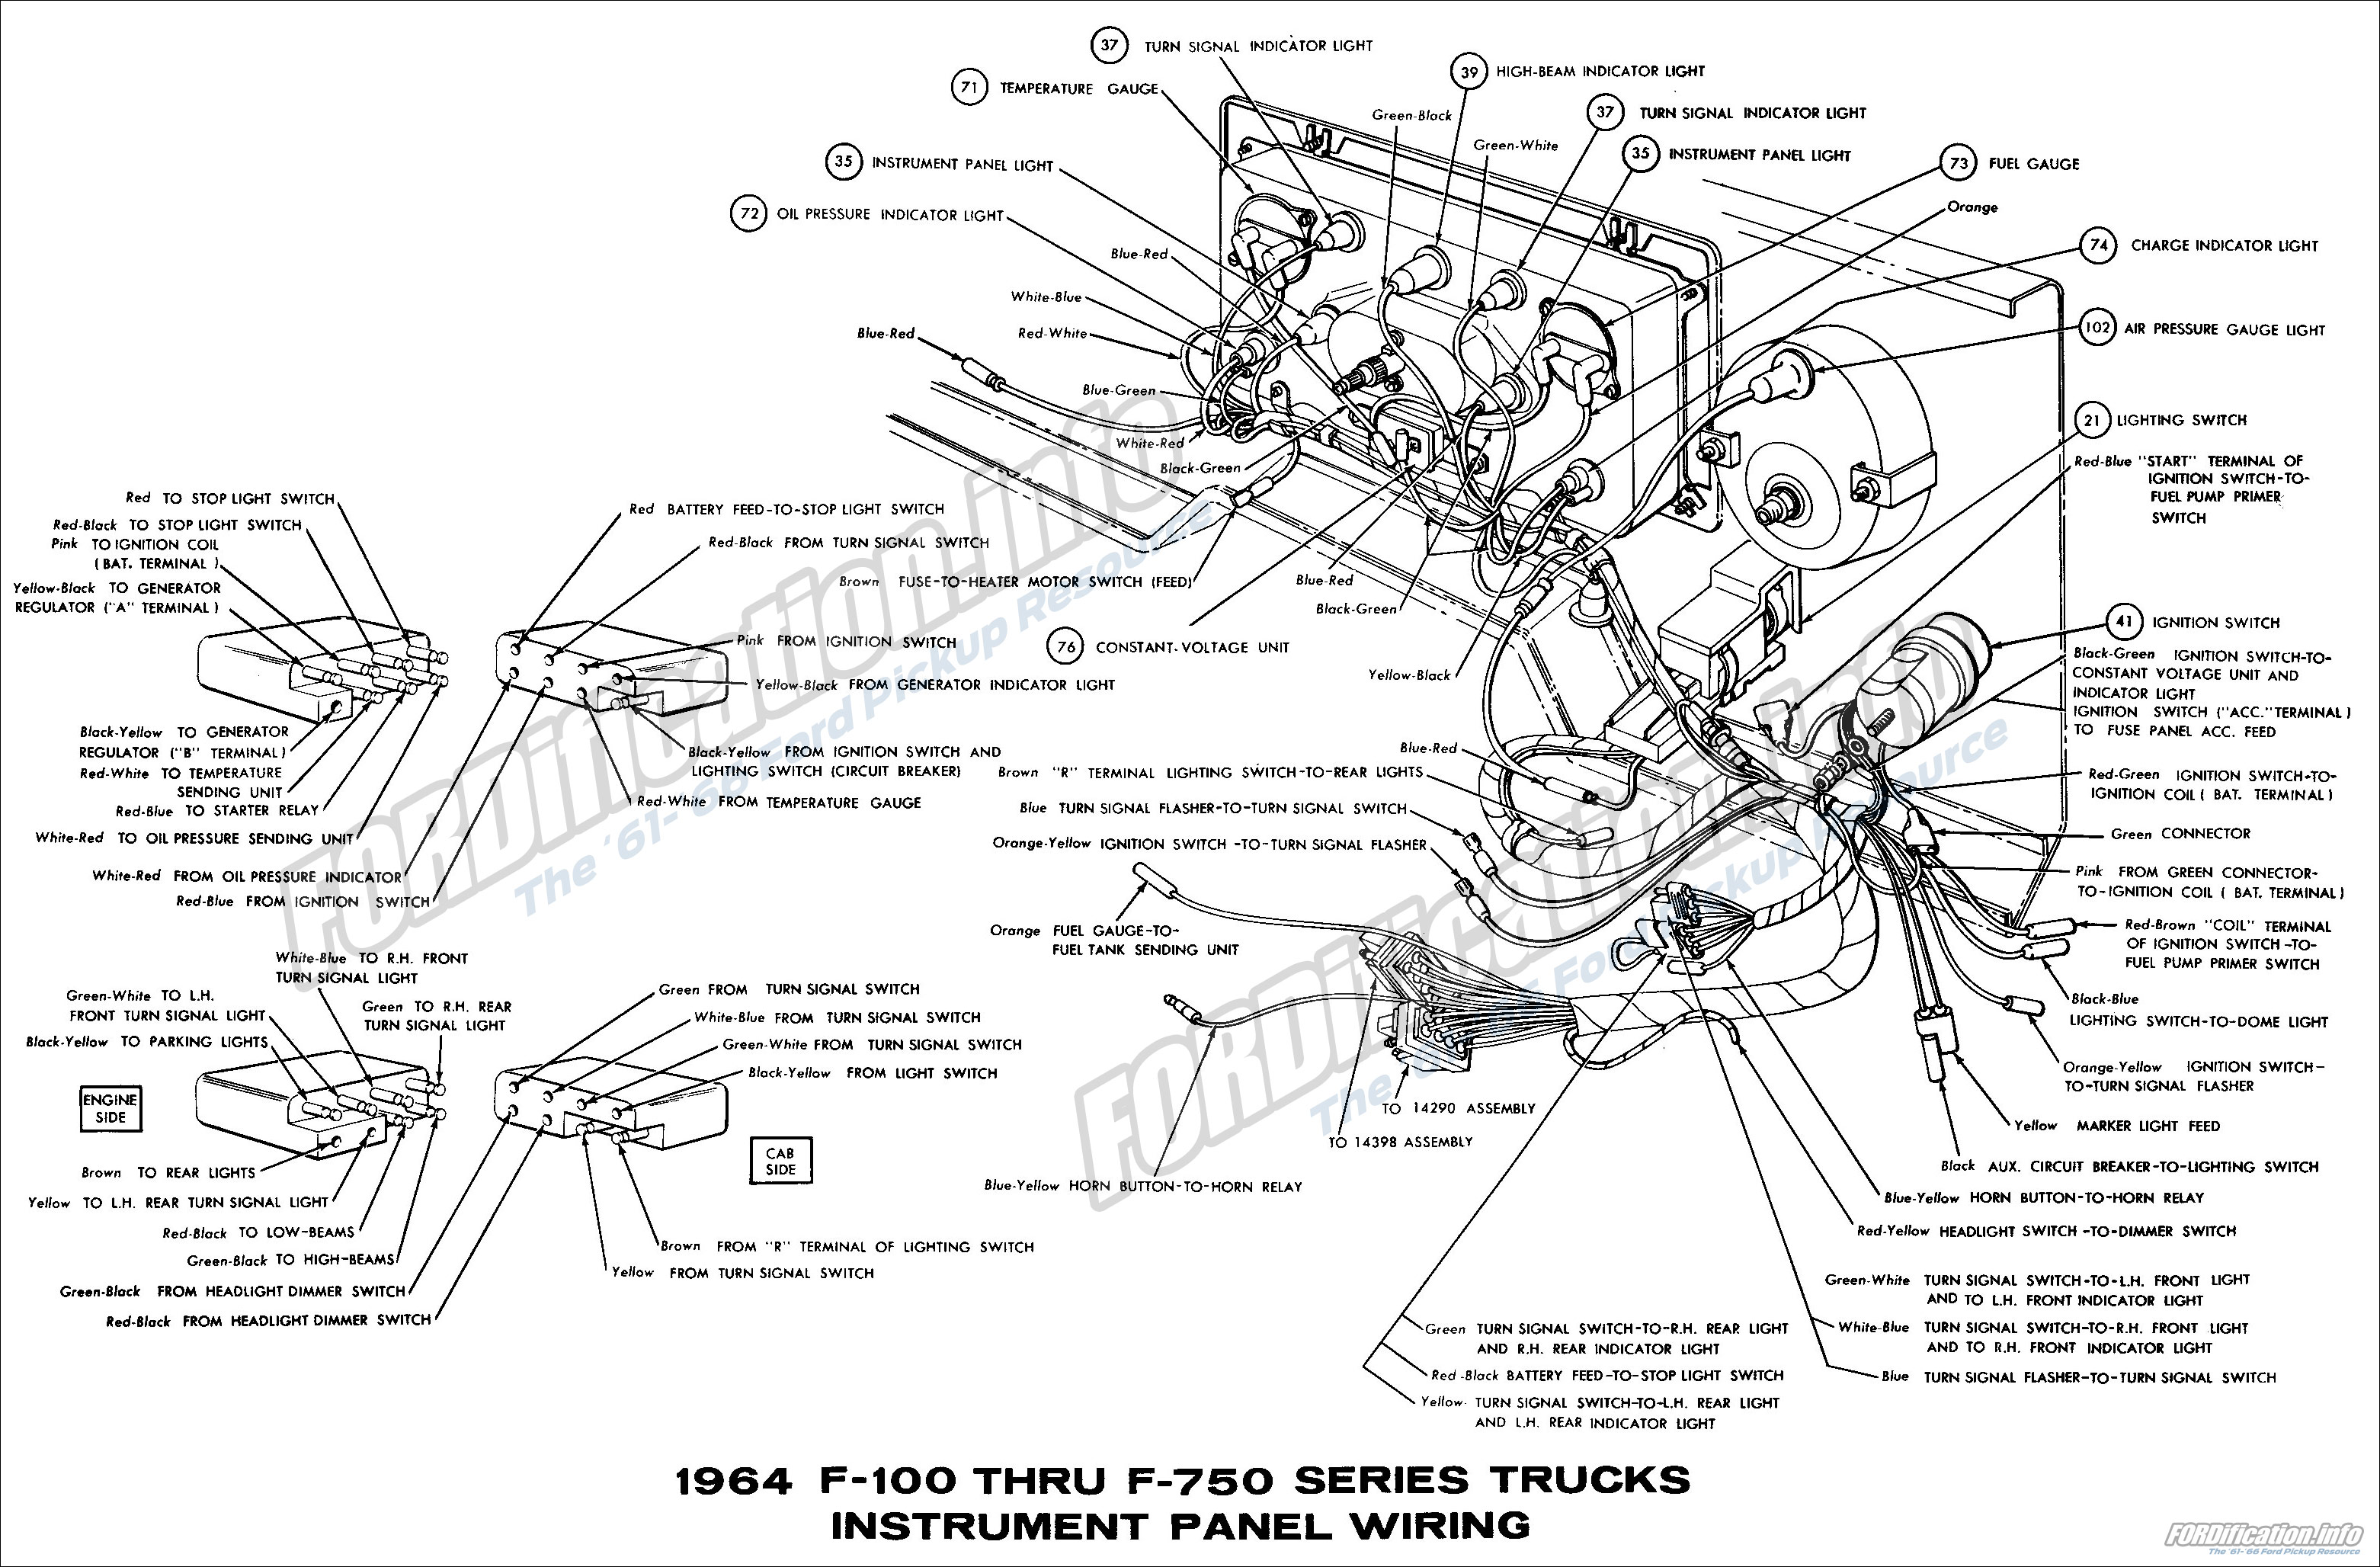 1964 ford f250 wiring diagram schematics wiring diagrams u2022 rh seniorlivinguniversity co